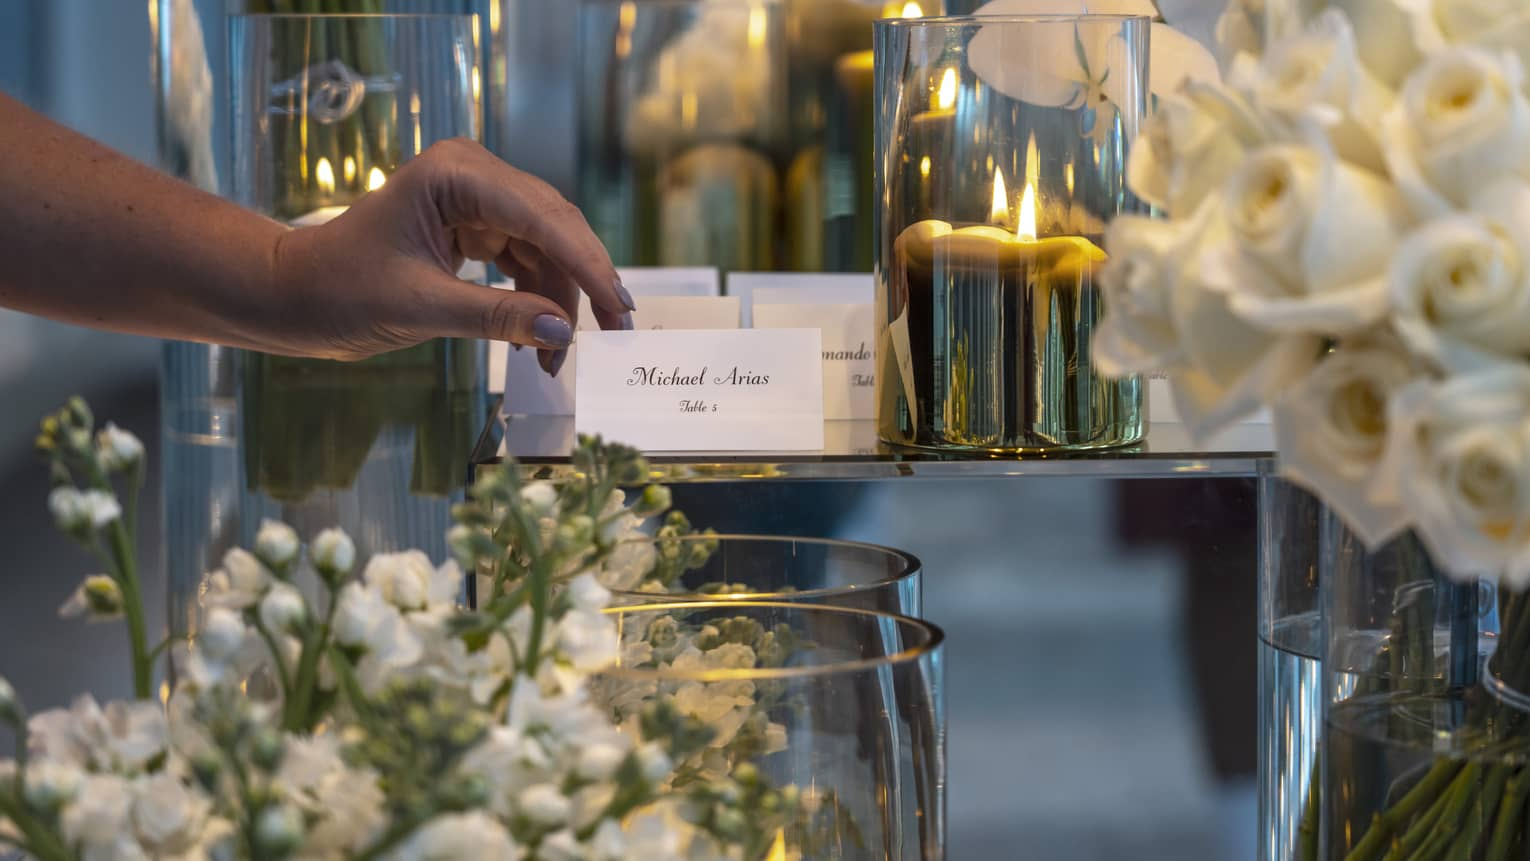 Hand placing banquet name card on table near vases with candles, white flowers